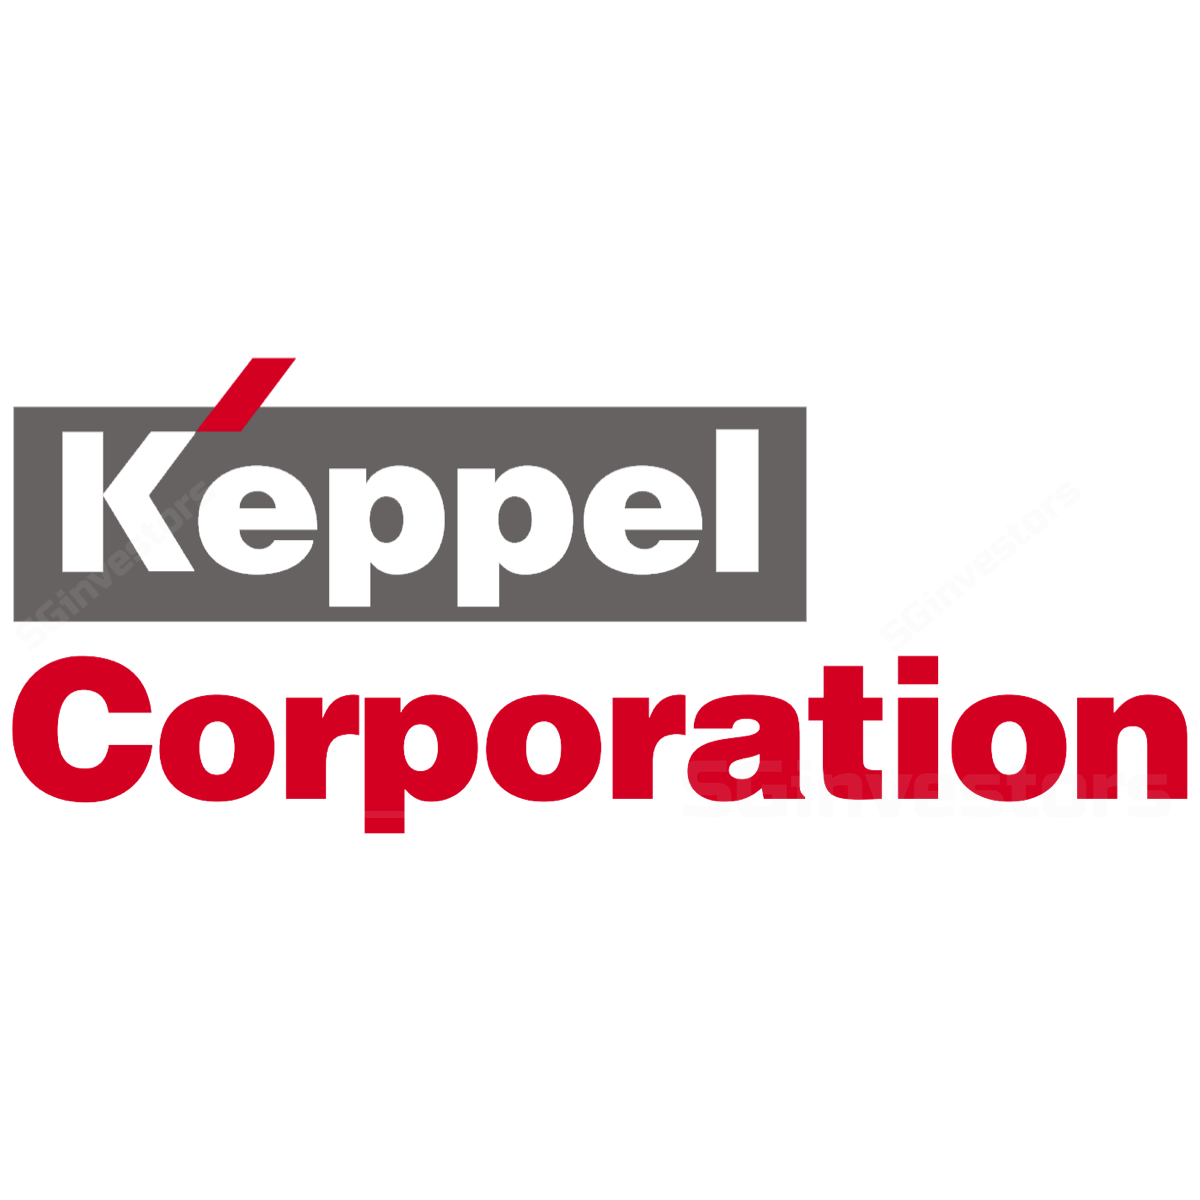 Keppel Corporation (KEP SP) - UOB Kay Hian 2017-10-20: Land Sales From TJEC Potentially Worth Over S$1.1b